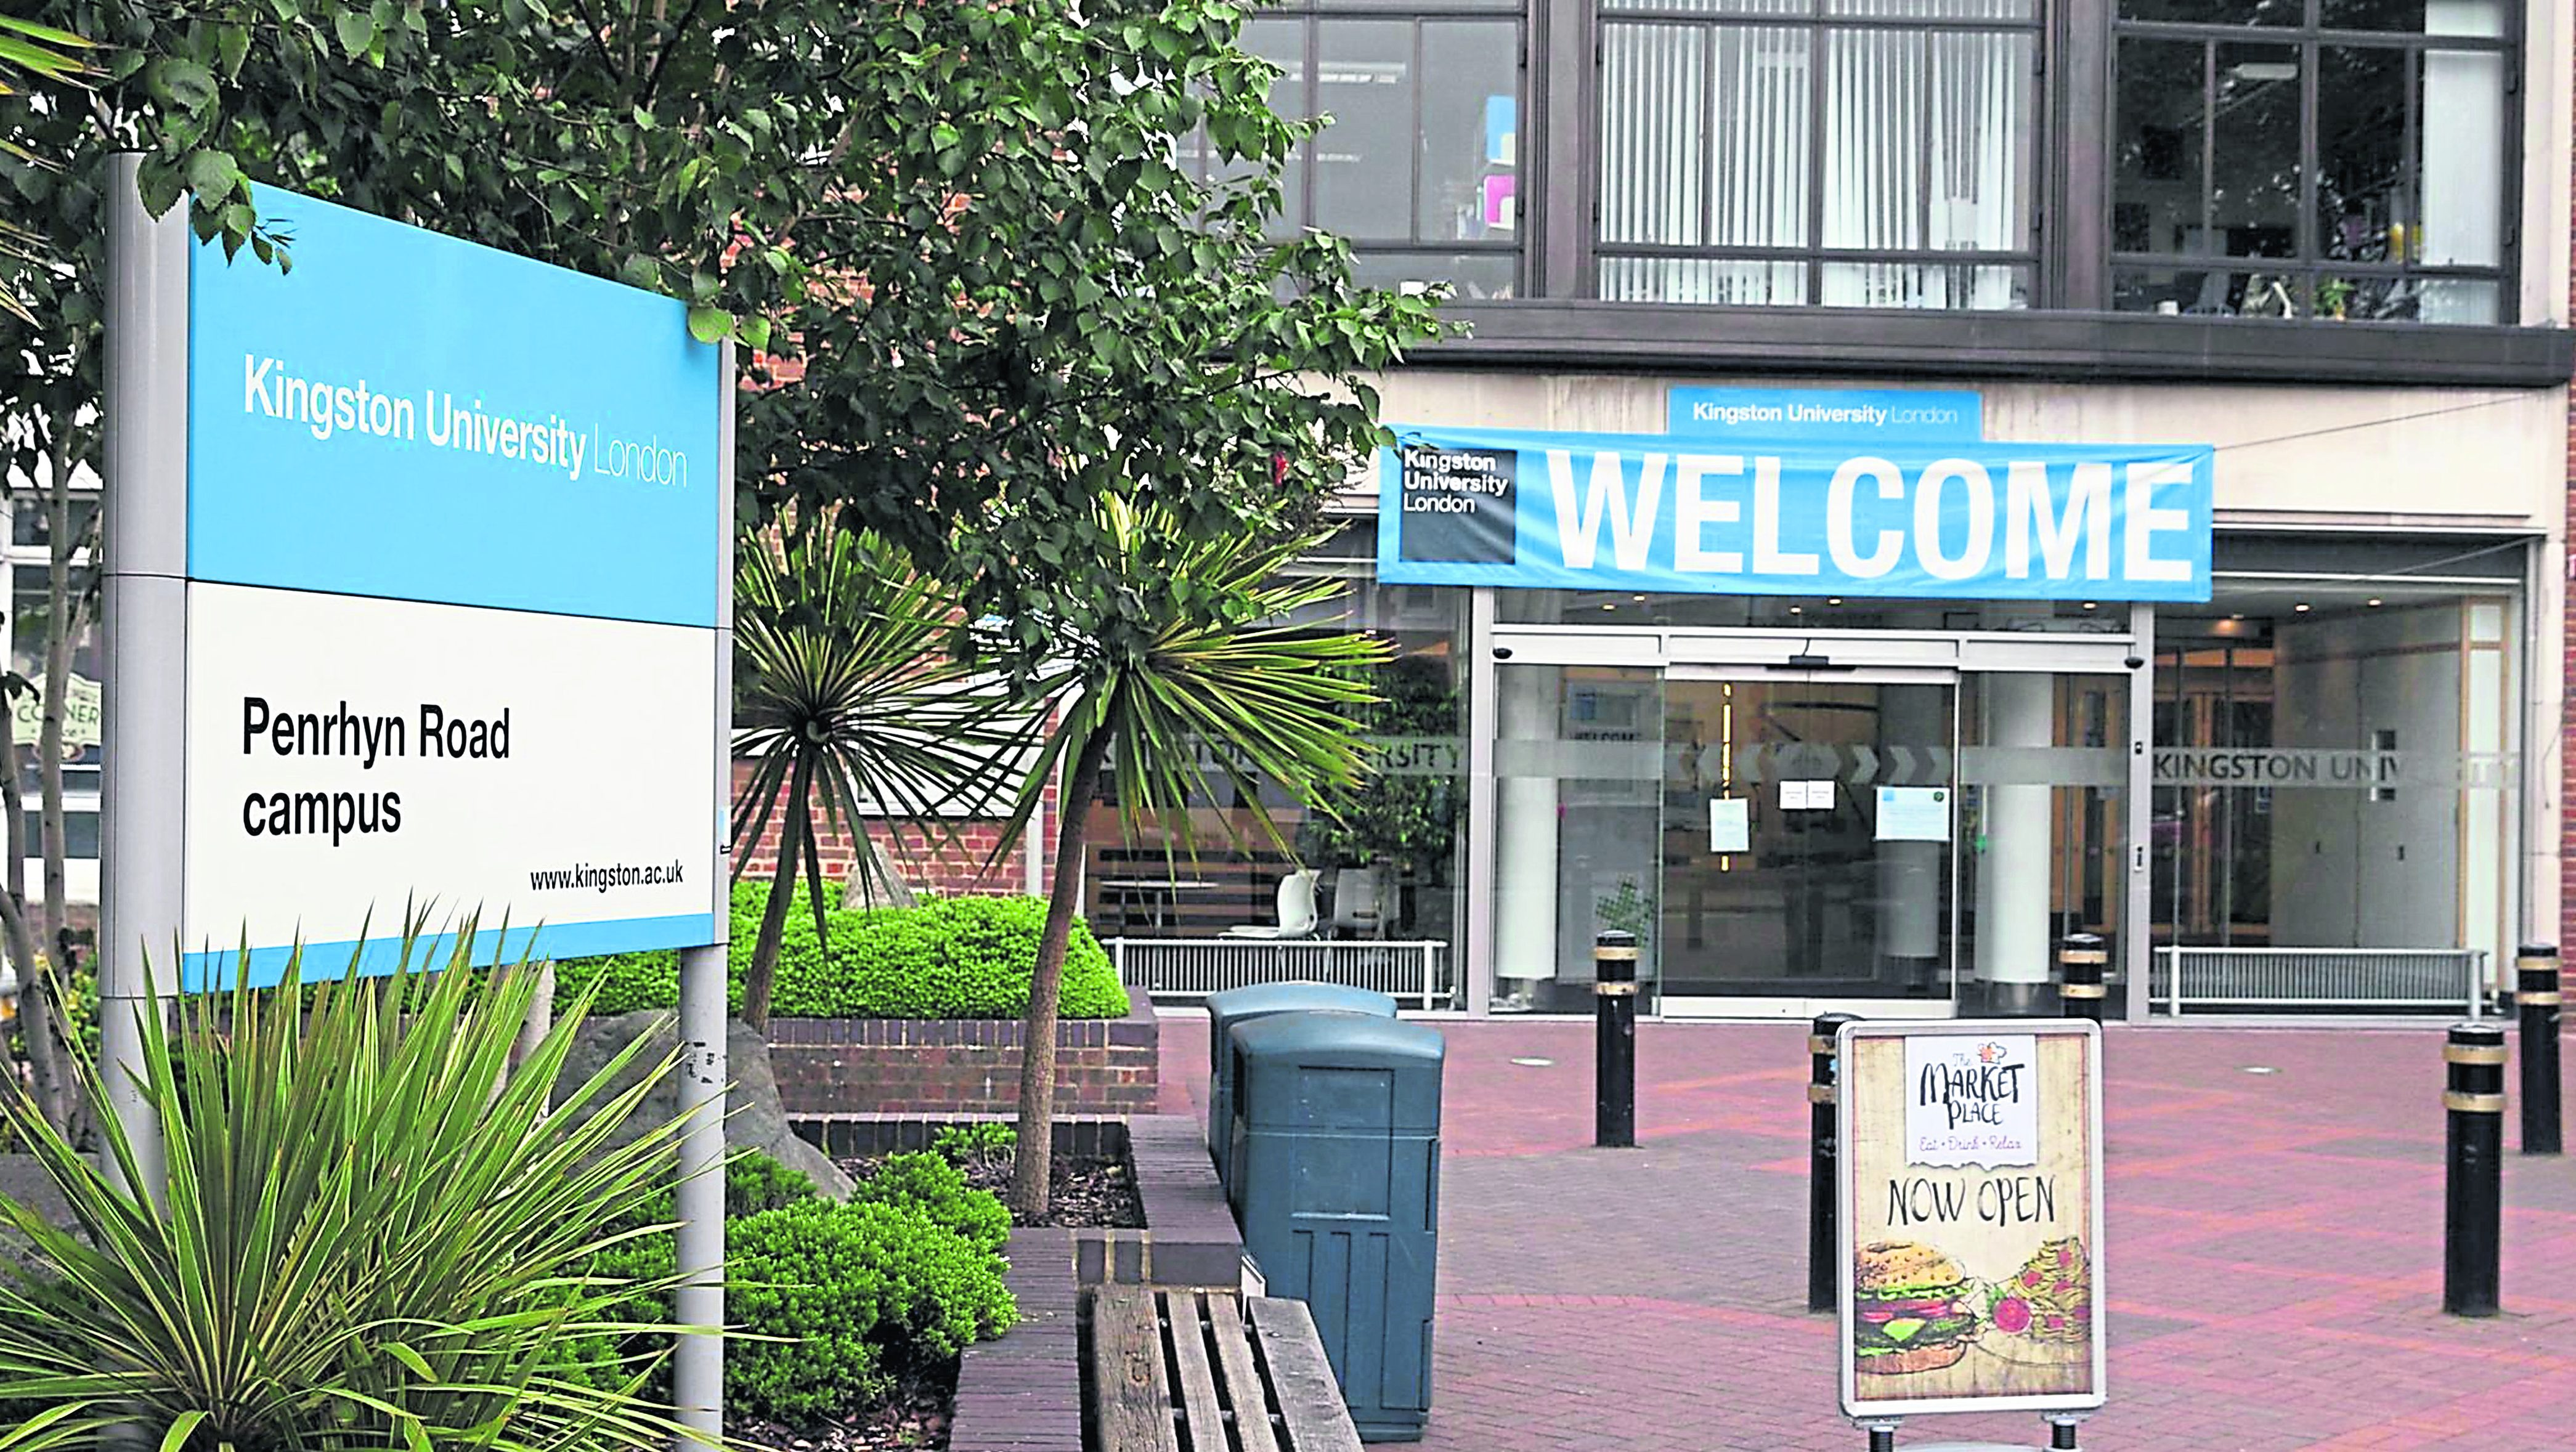 KU at risk of closure as student numbers plunge, warns expert